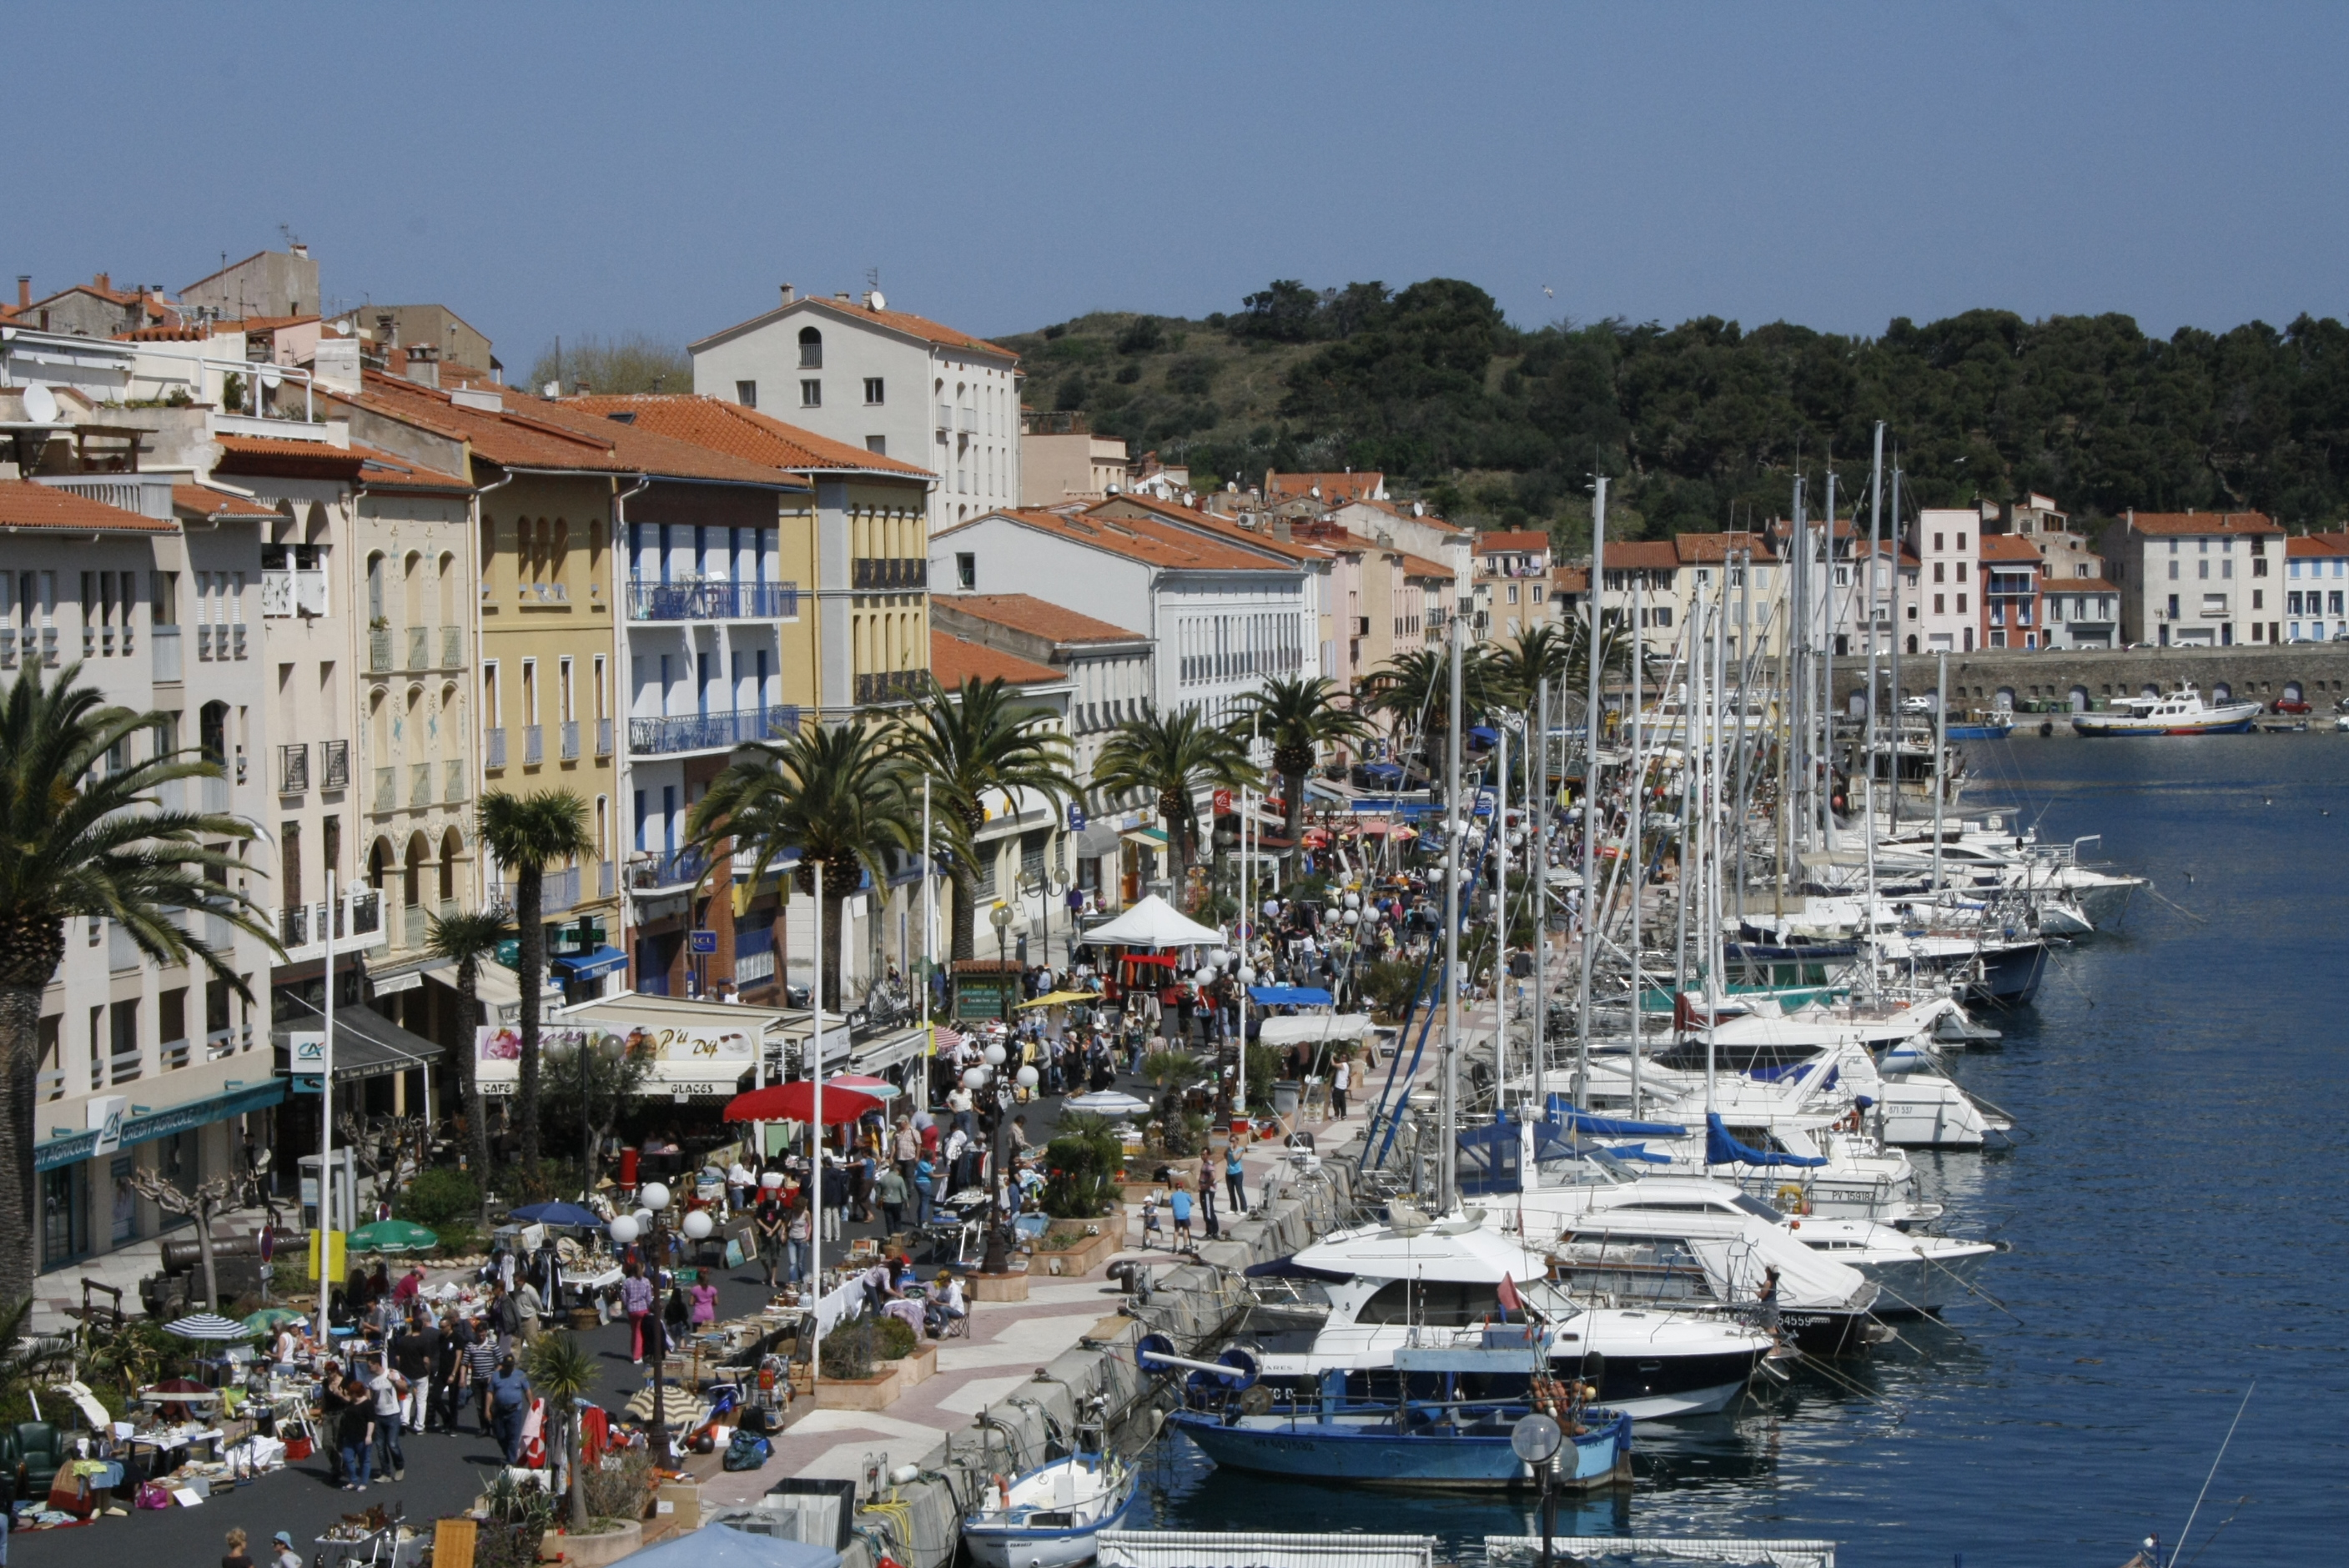 Port vendres modification des droits de port et de navigation - Immobilier port vendres pyrenees orientales ...